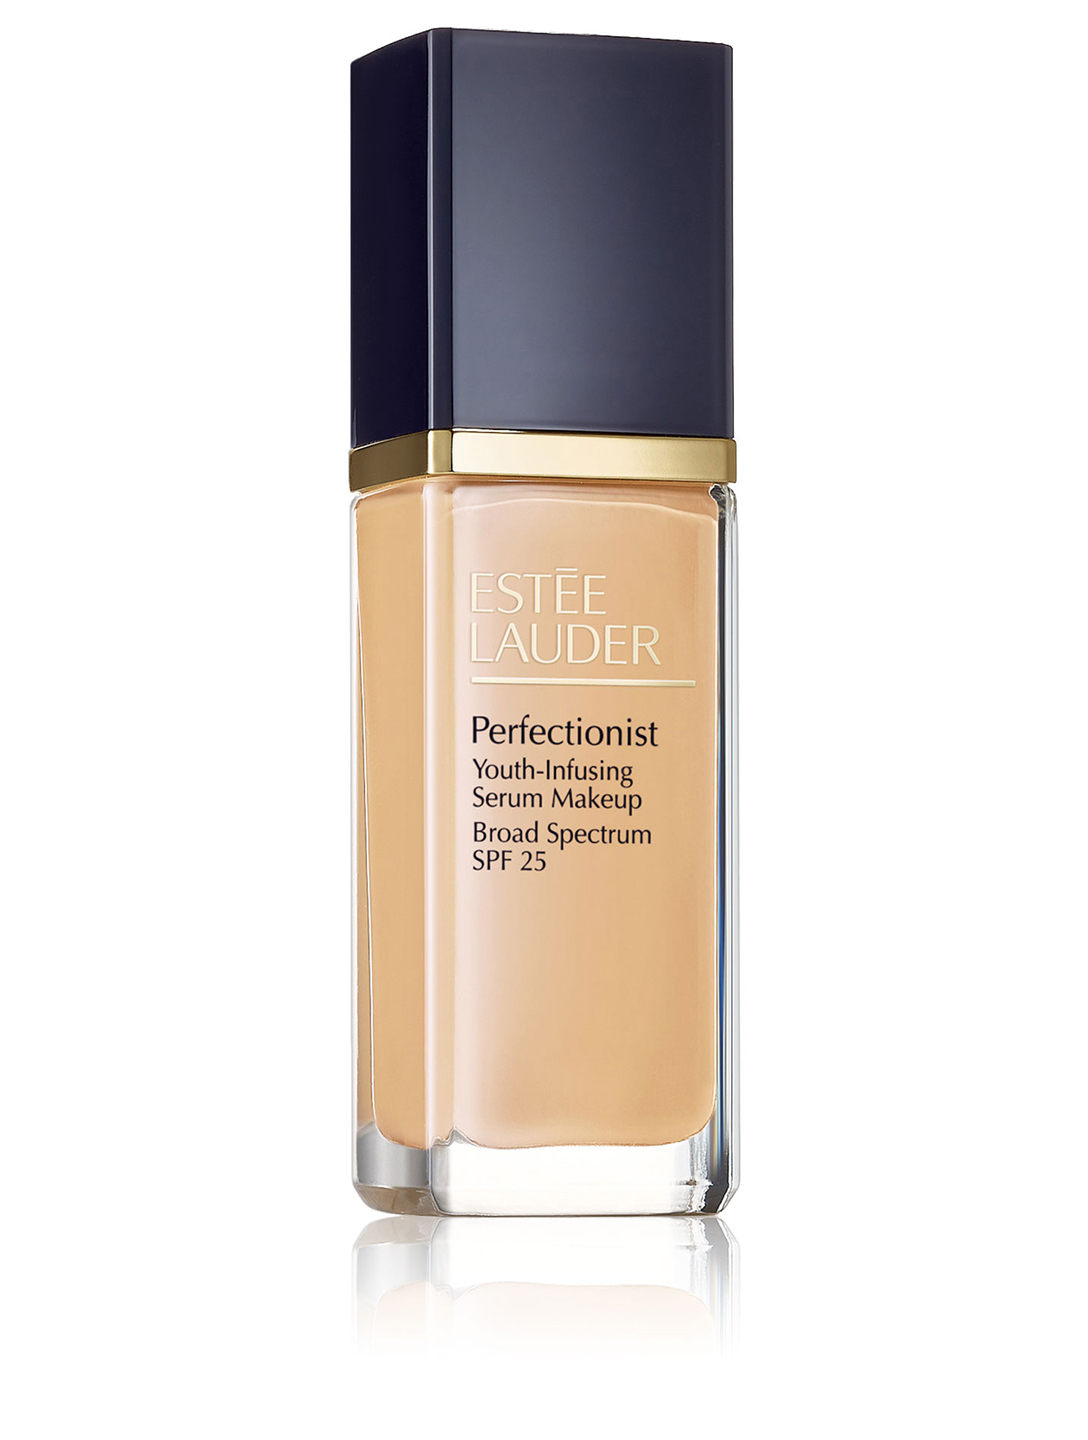 ESTÉE LAUDER Perfectionist Youth-Infusing Serum Makeup FPS/SPF 25 Beauty Neutral